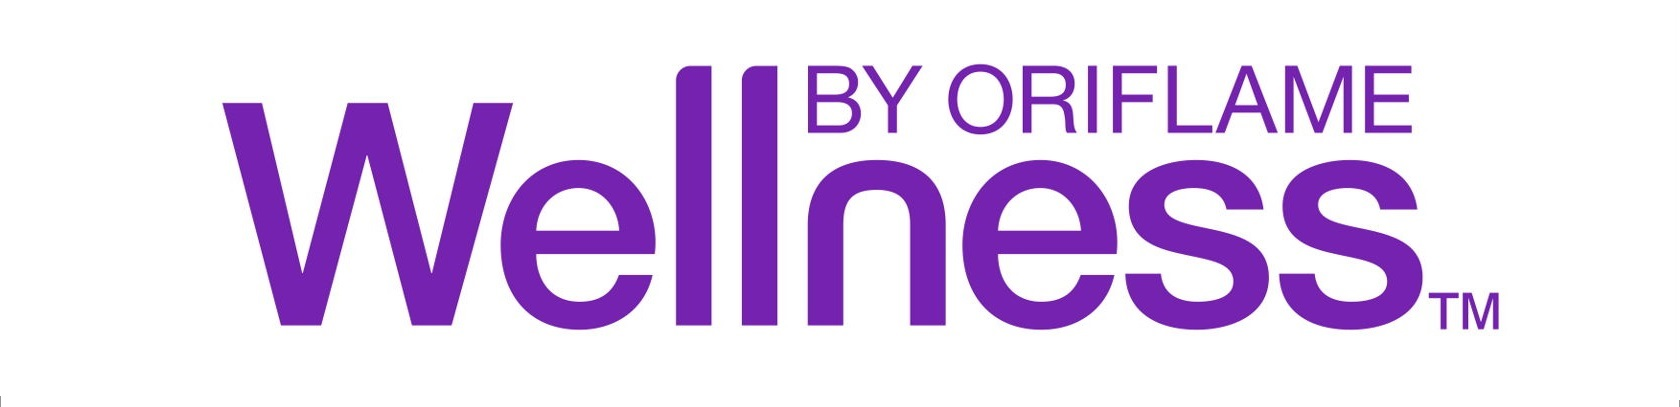 wellness_logo-1